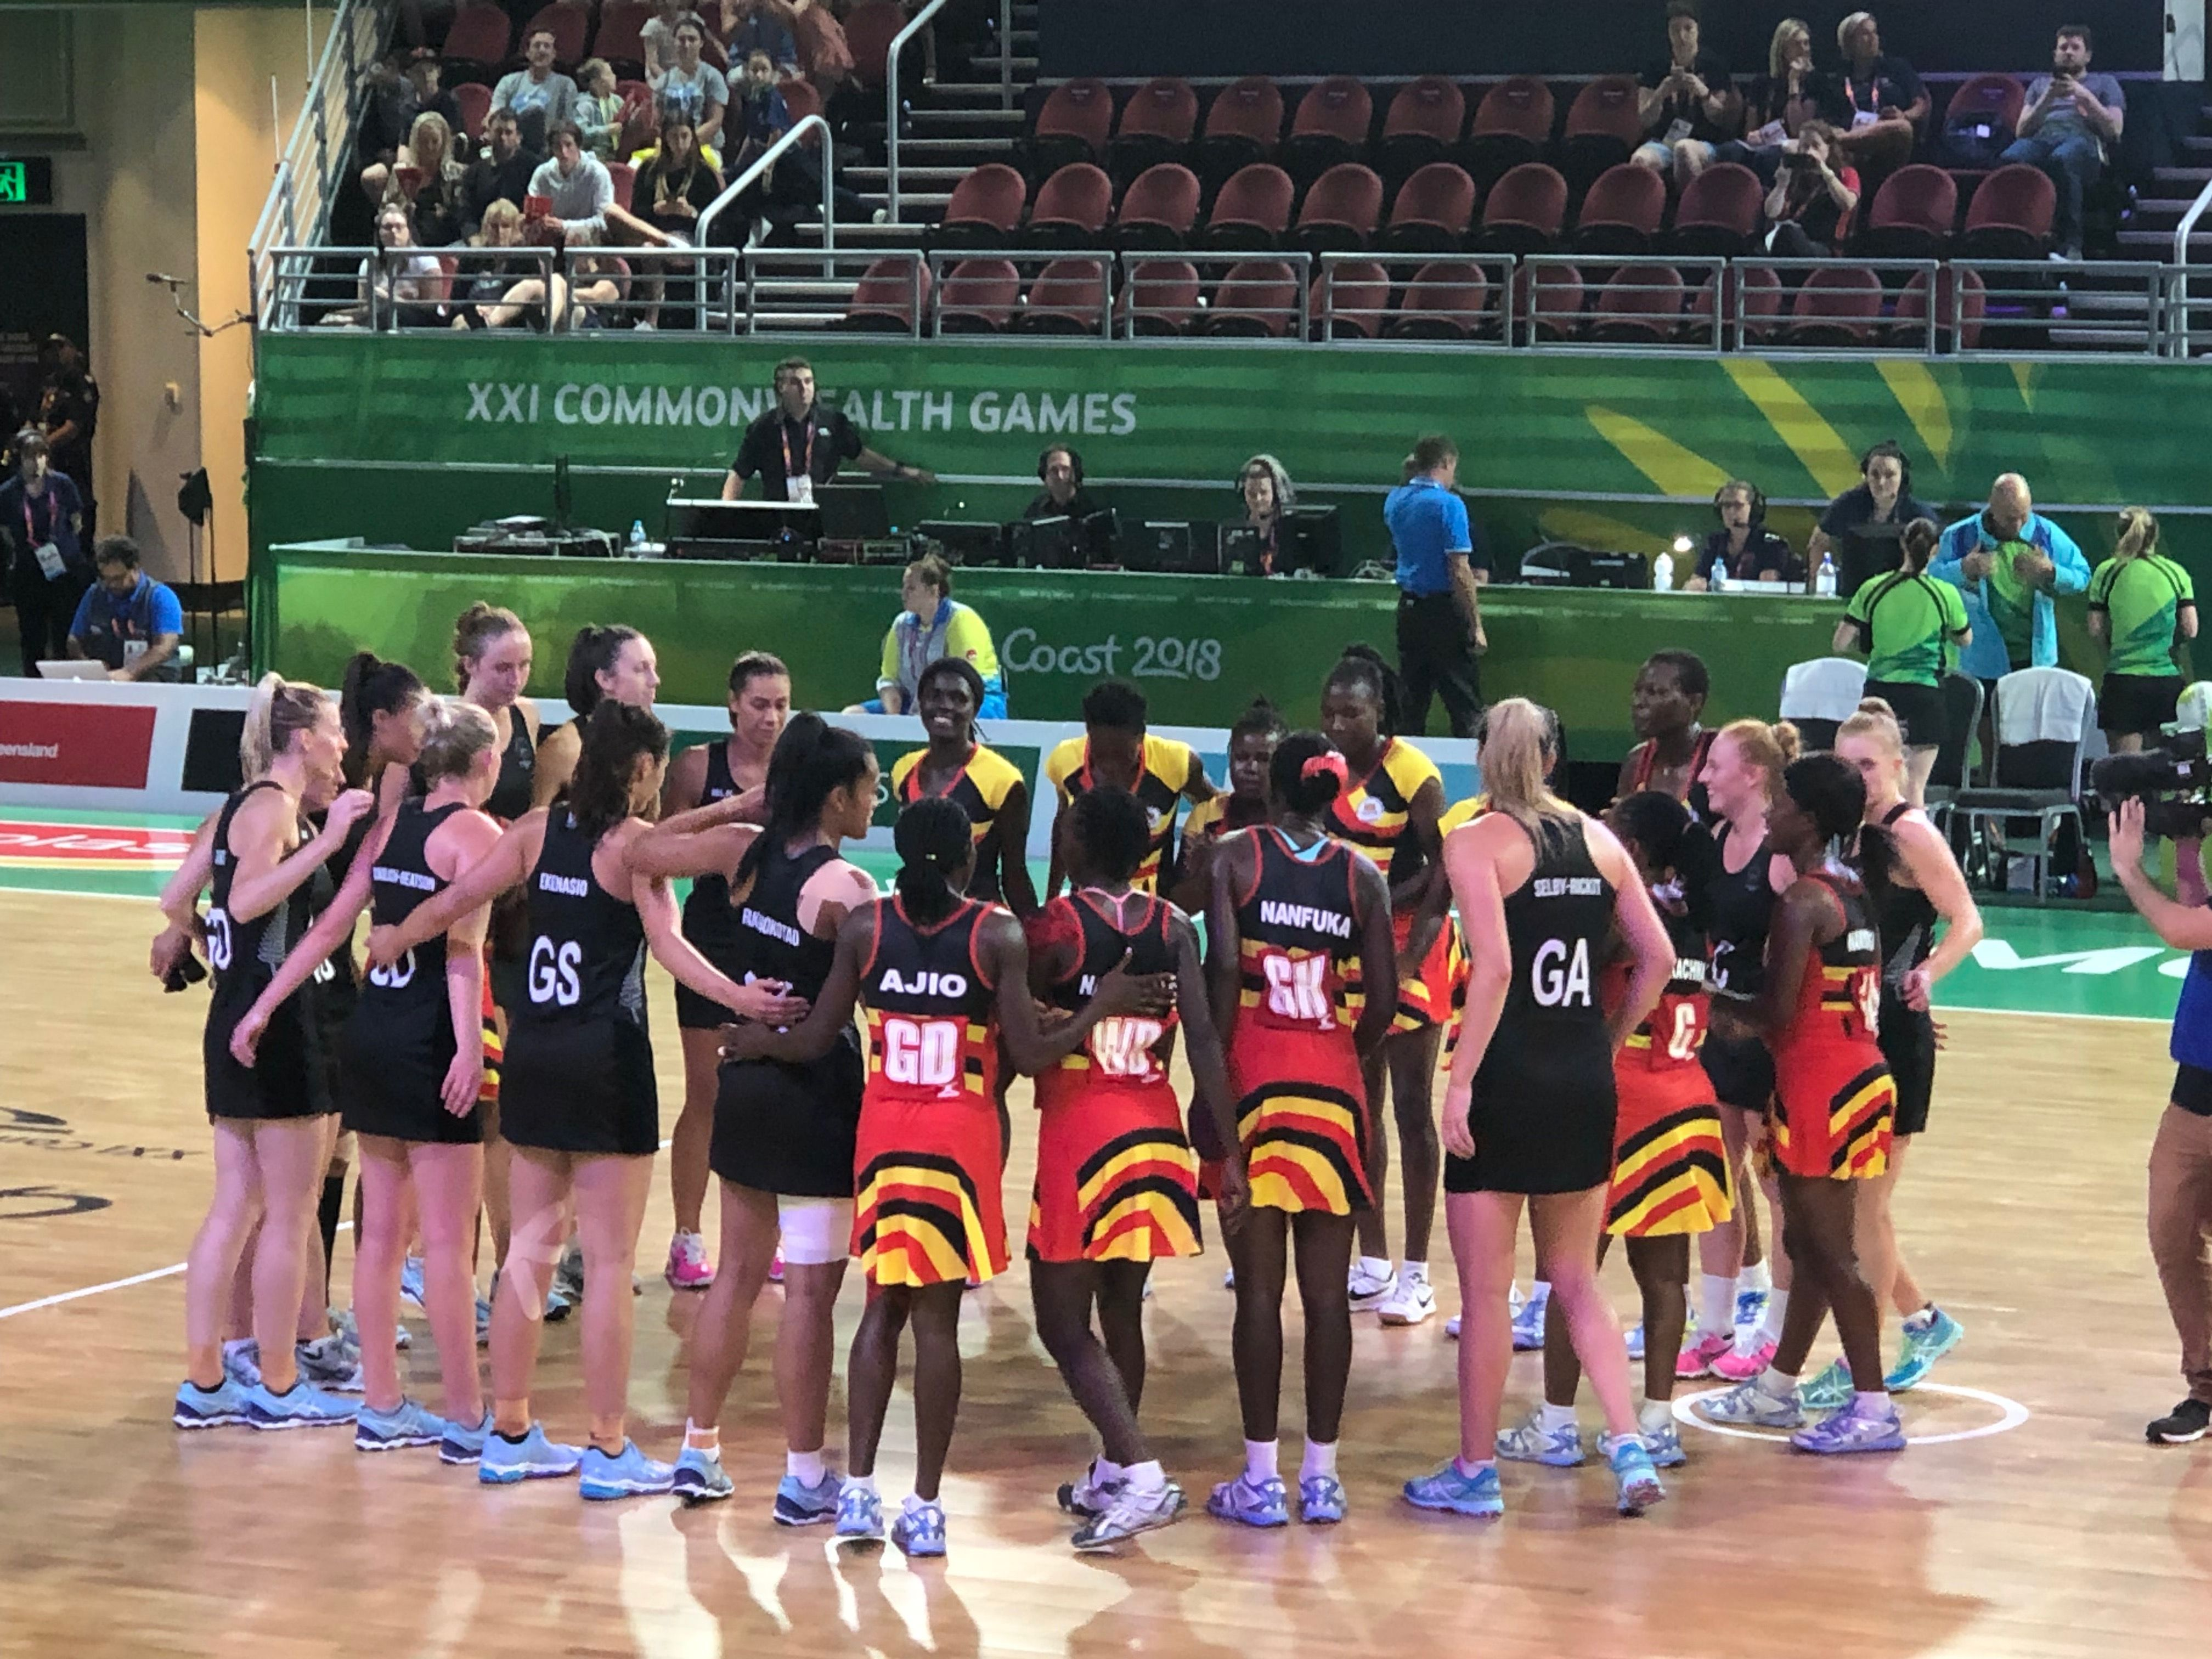 New Zealand Vs Uganda Gold Coast Commonwealth Games